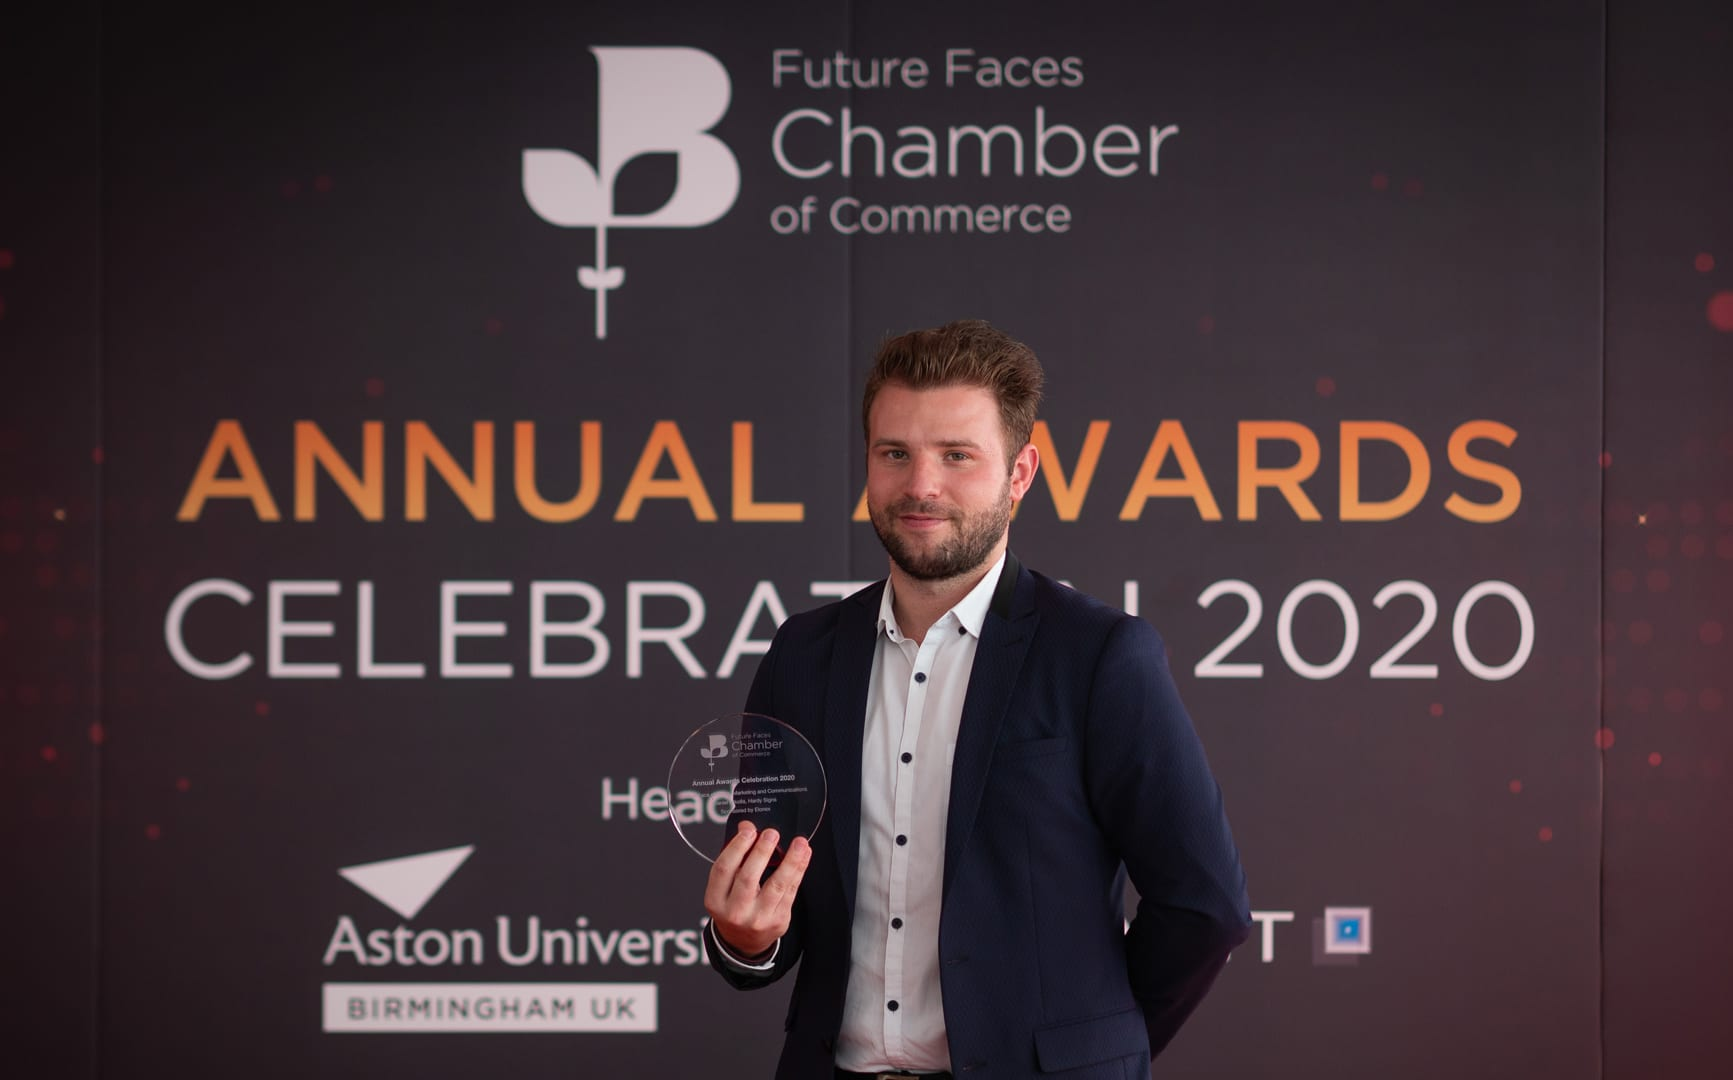 Daniel Nikolla, 27, has been named the Future Face of Sales, Marketing and Communications in the Future Faces Awards 2020